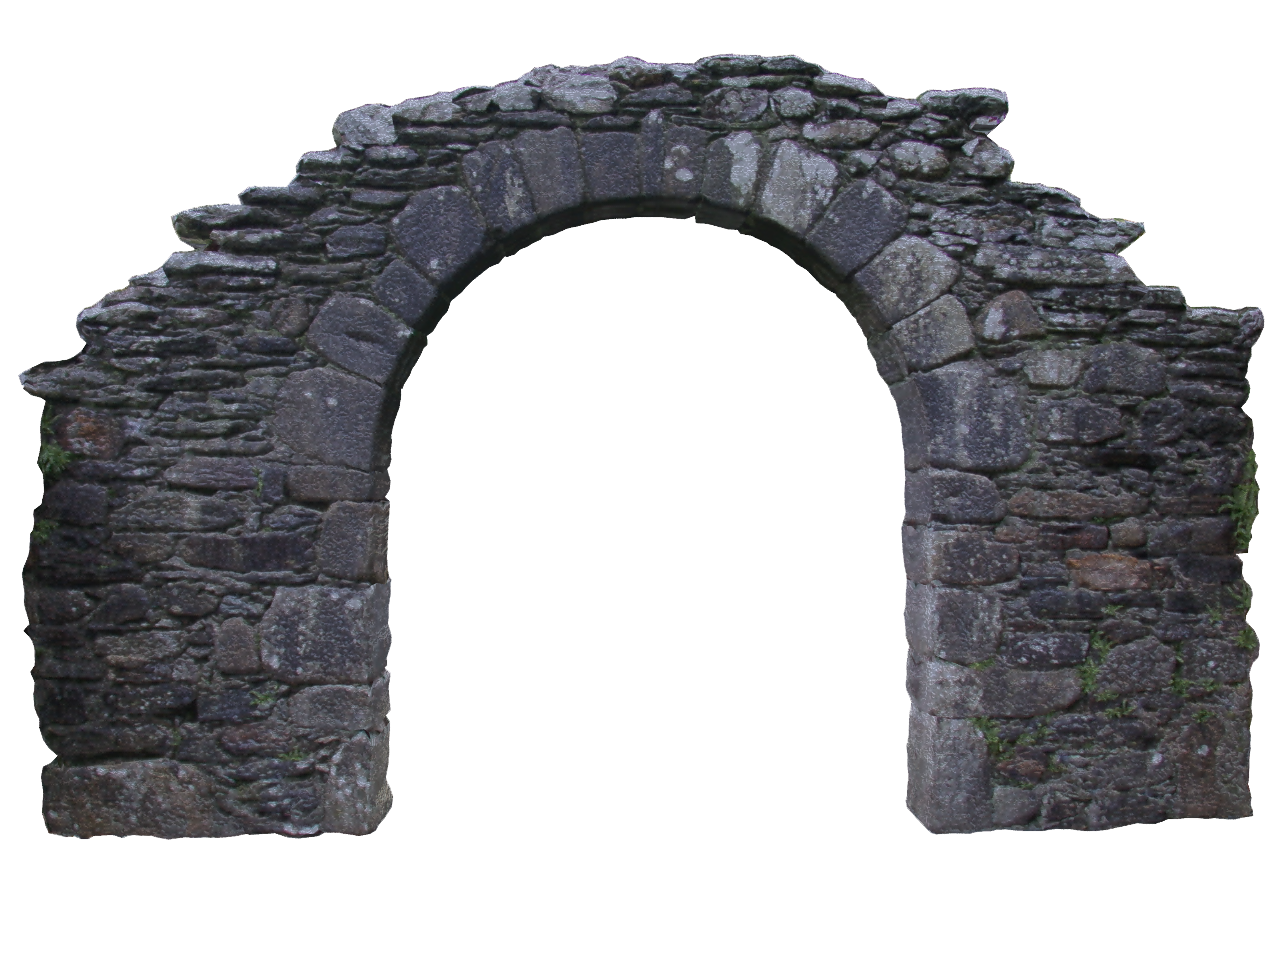 Vines clipart archway. Stone arch stock by